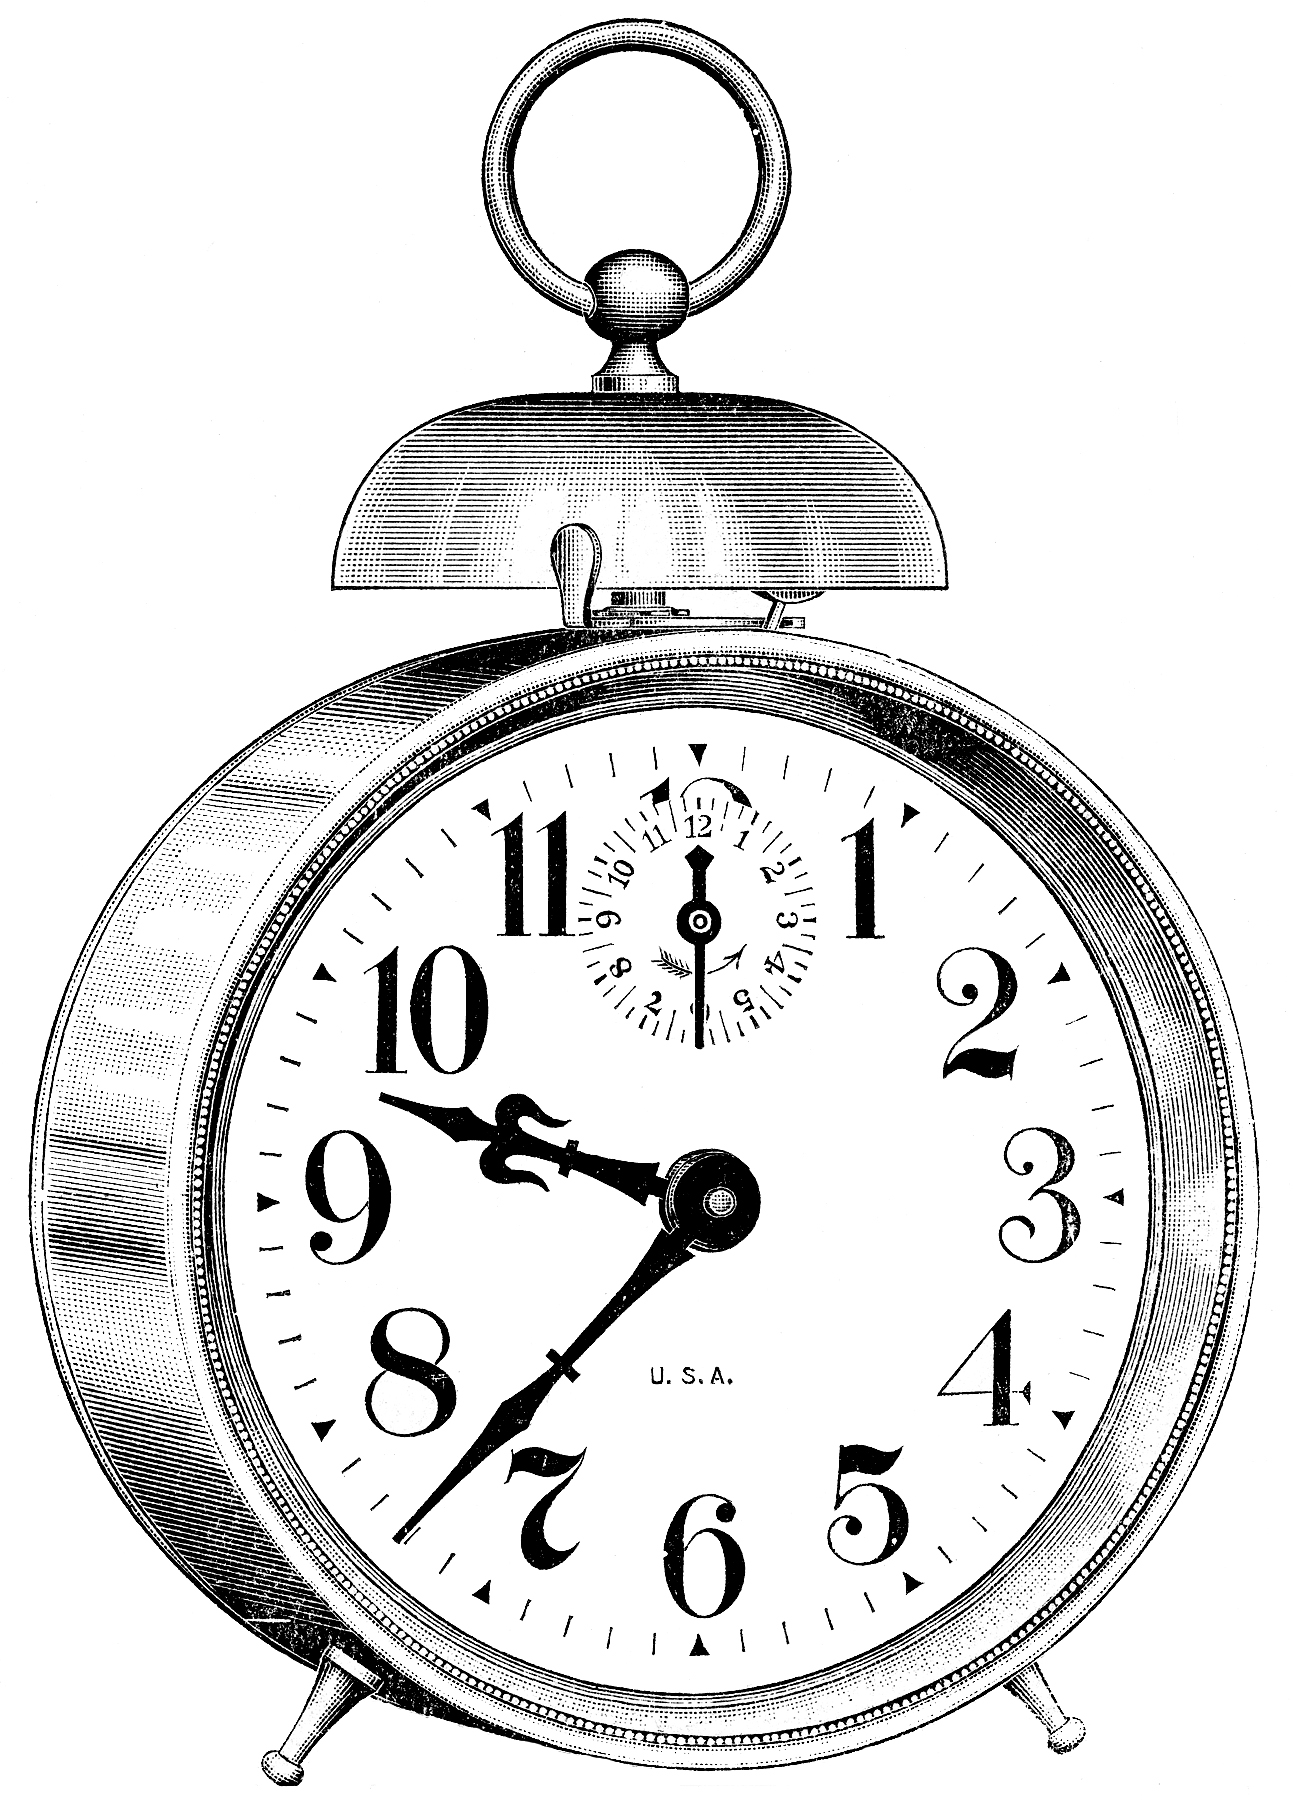 Old fashioned clock with world clipart graphic royalty free stock 8 Clock Graphics - Vintage Alarm Clocks etc - Updated! - The ... graphic royalty free stock